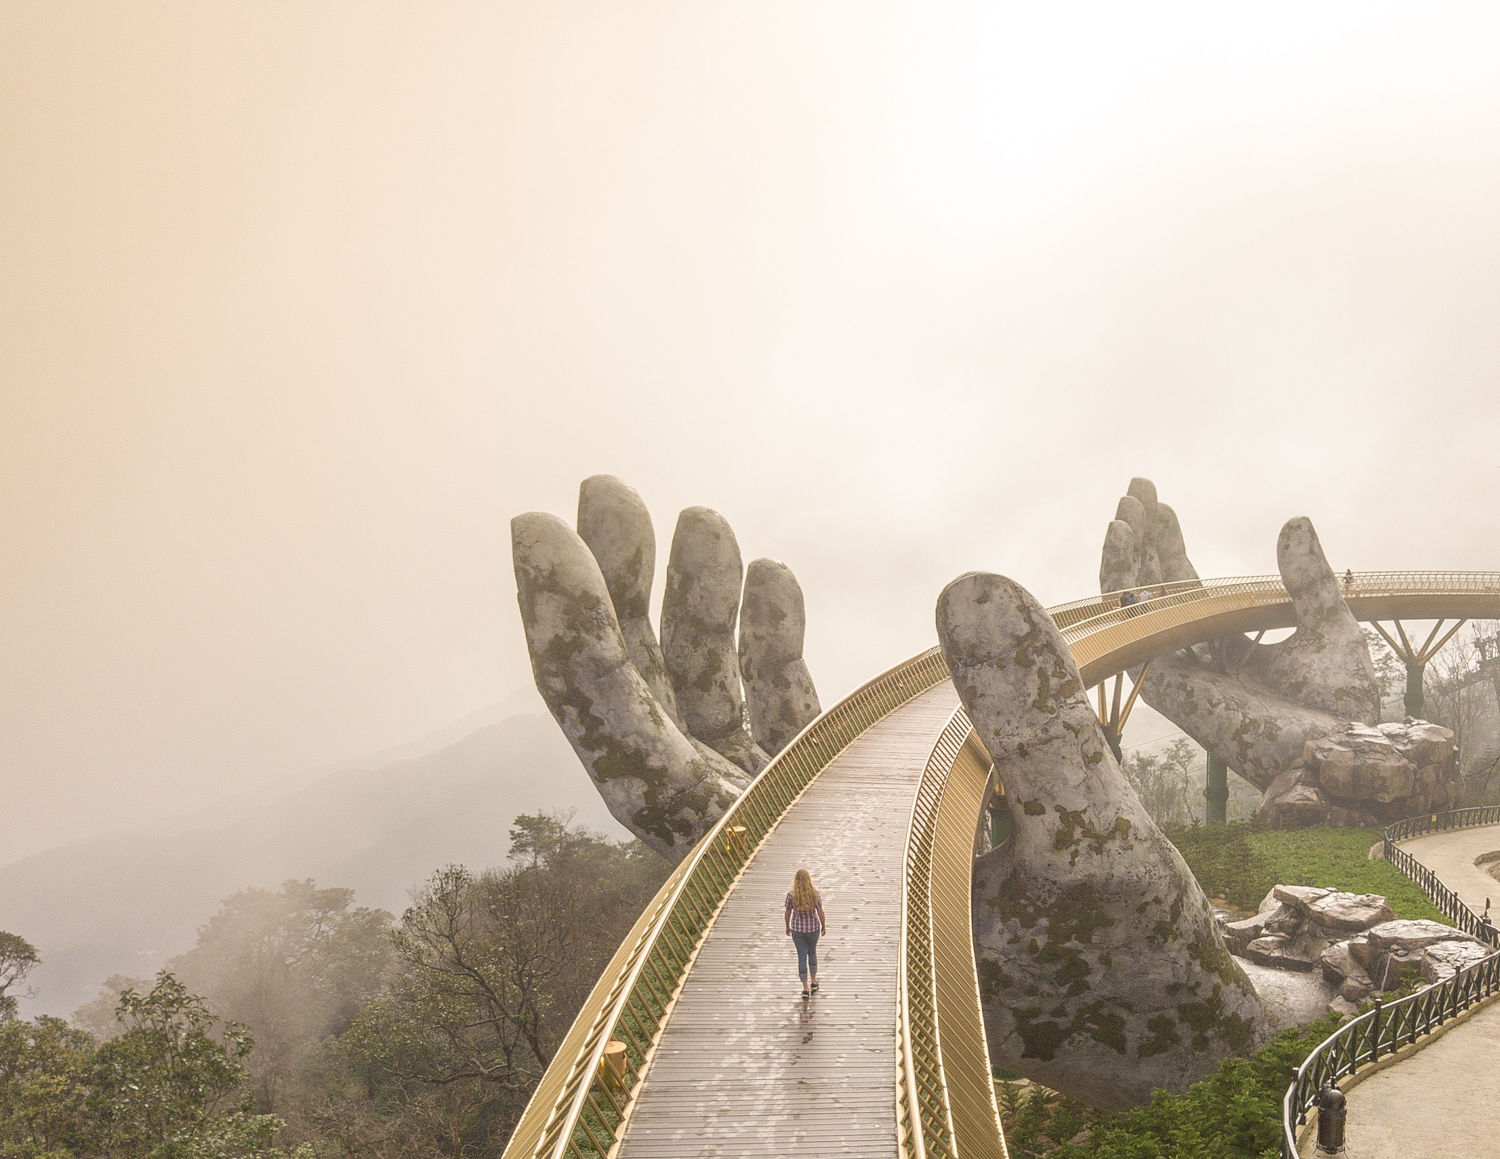 Golden Bridge at Sun World, Ba Na Hills